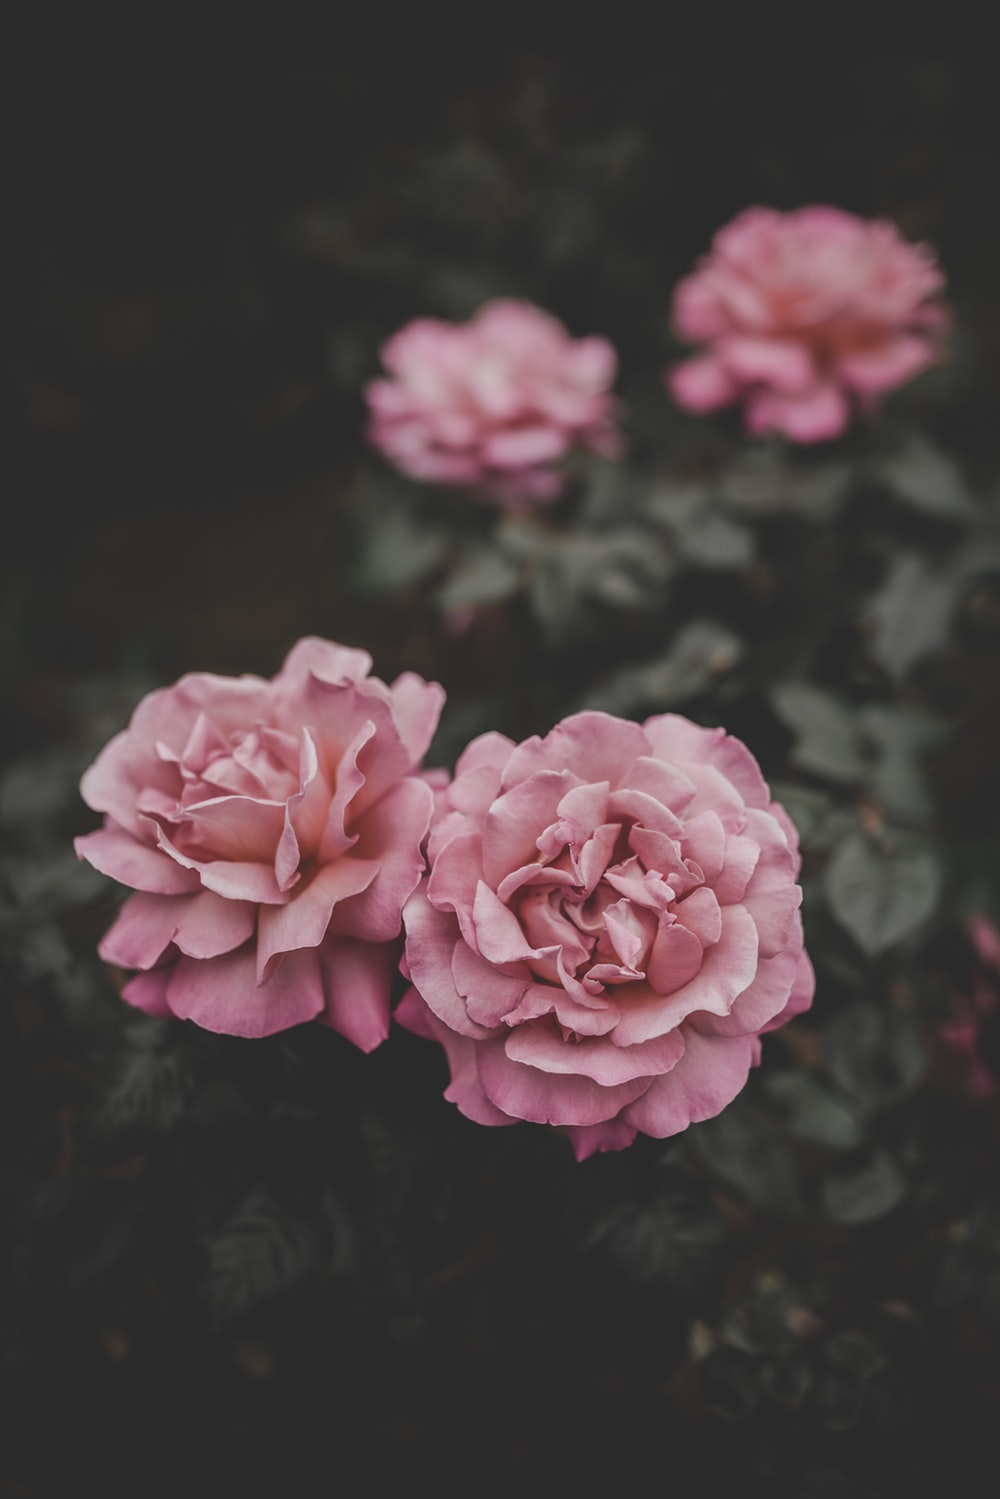 selective focus of two pink petaled flowers